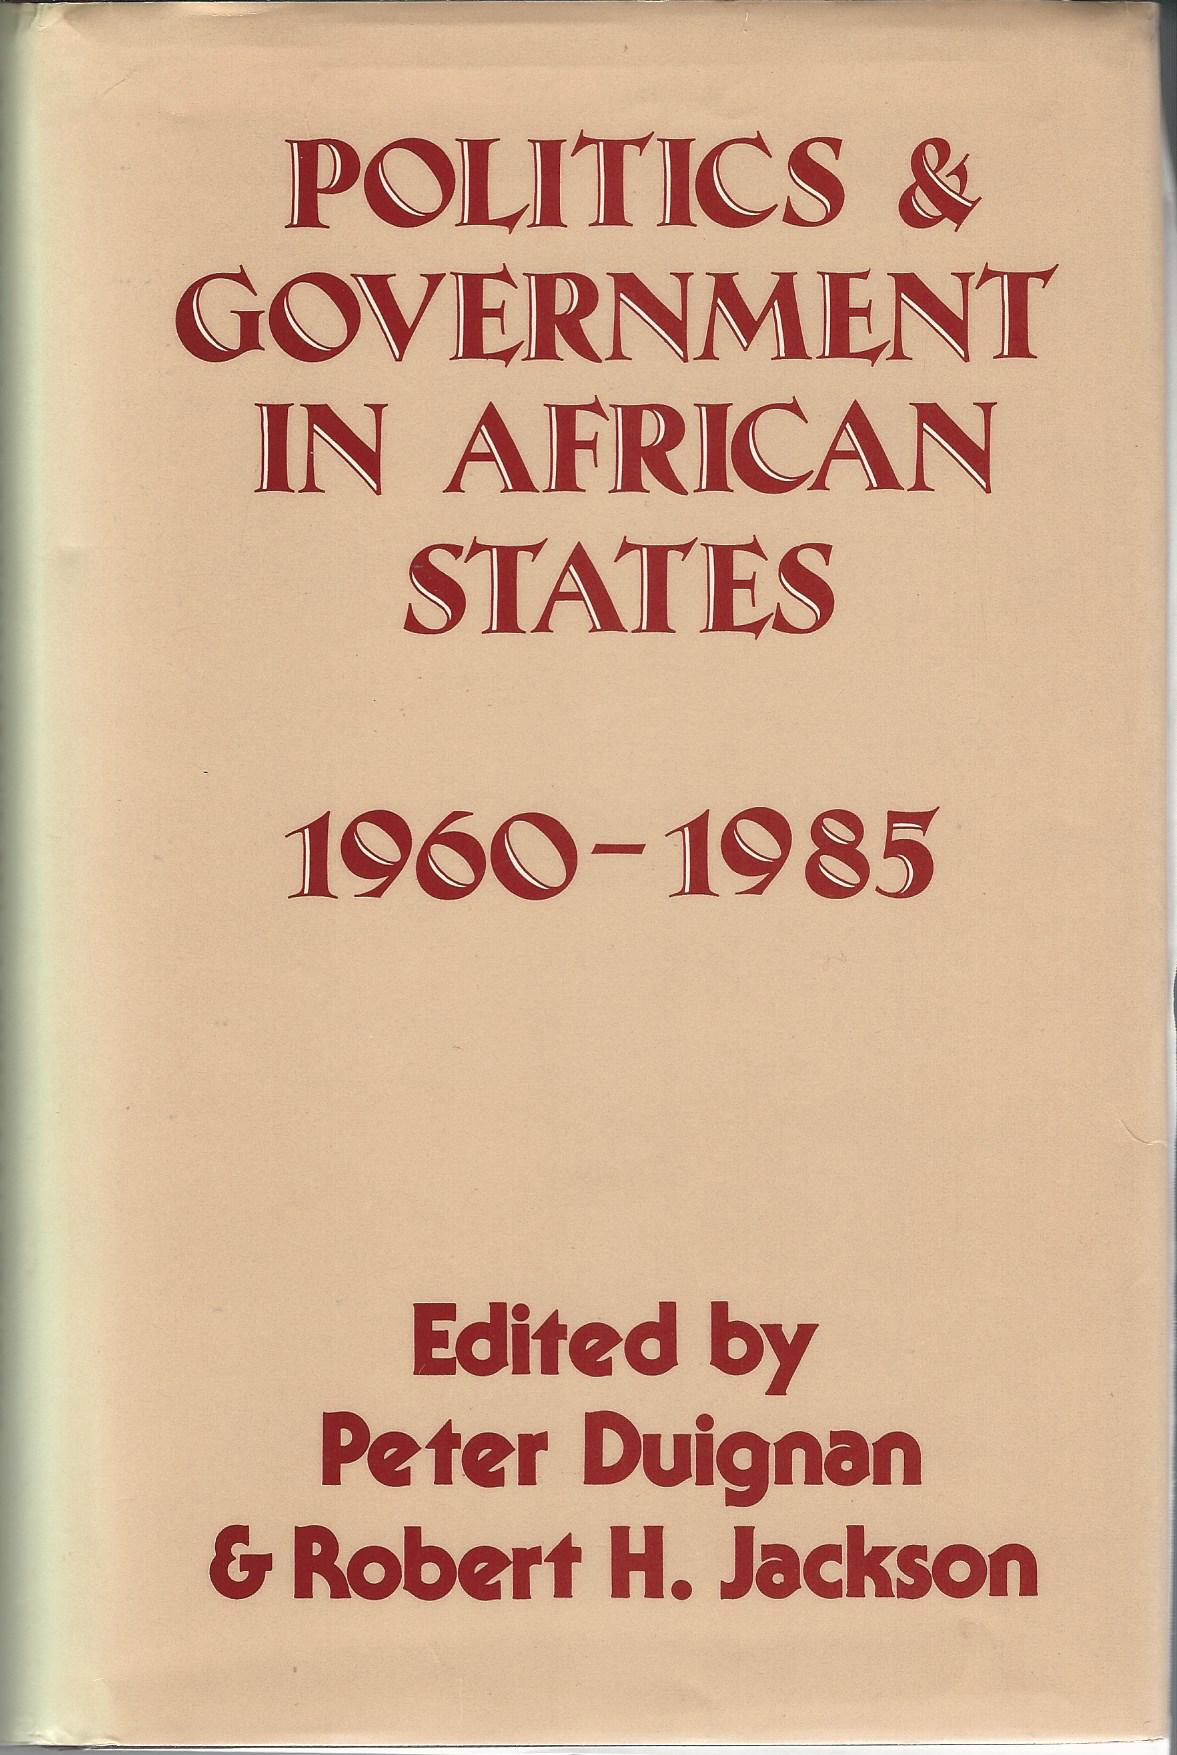 Image for Politics & Government in African States 1960-1985.